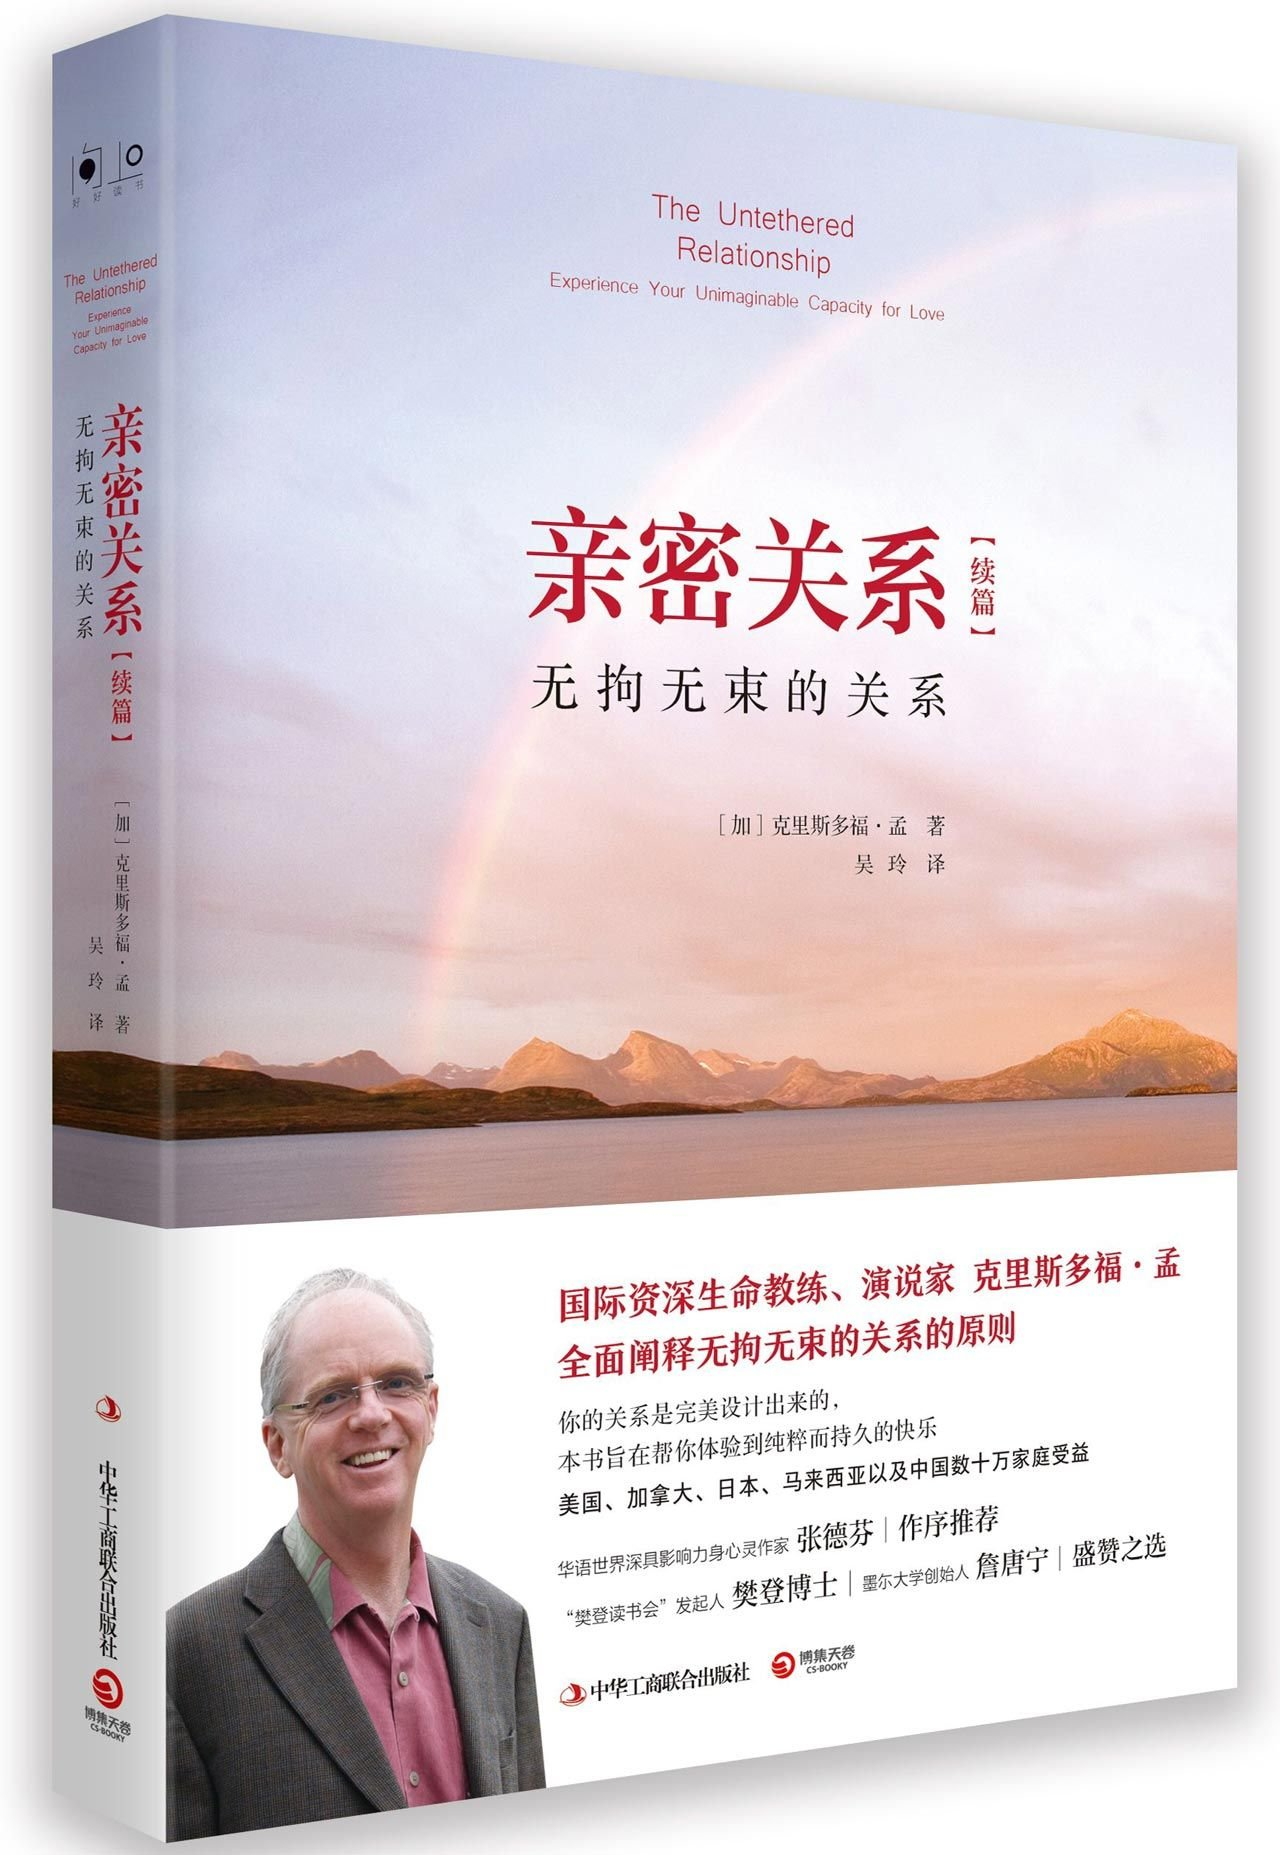 The Untethered Relationship: Experience Your Unimaginable Capacity For Love (Chinese Edition)